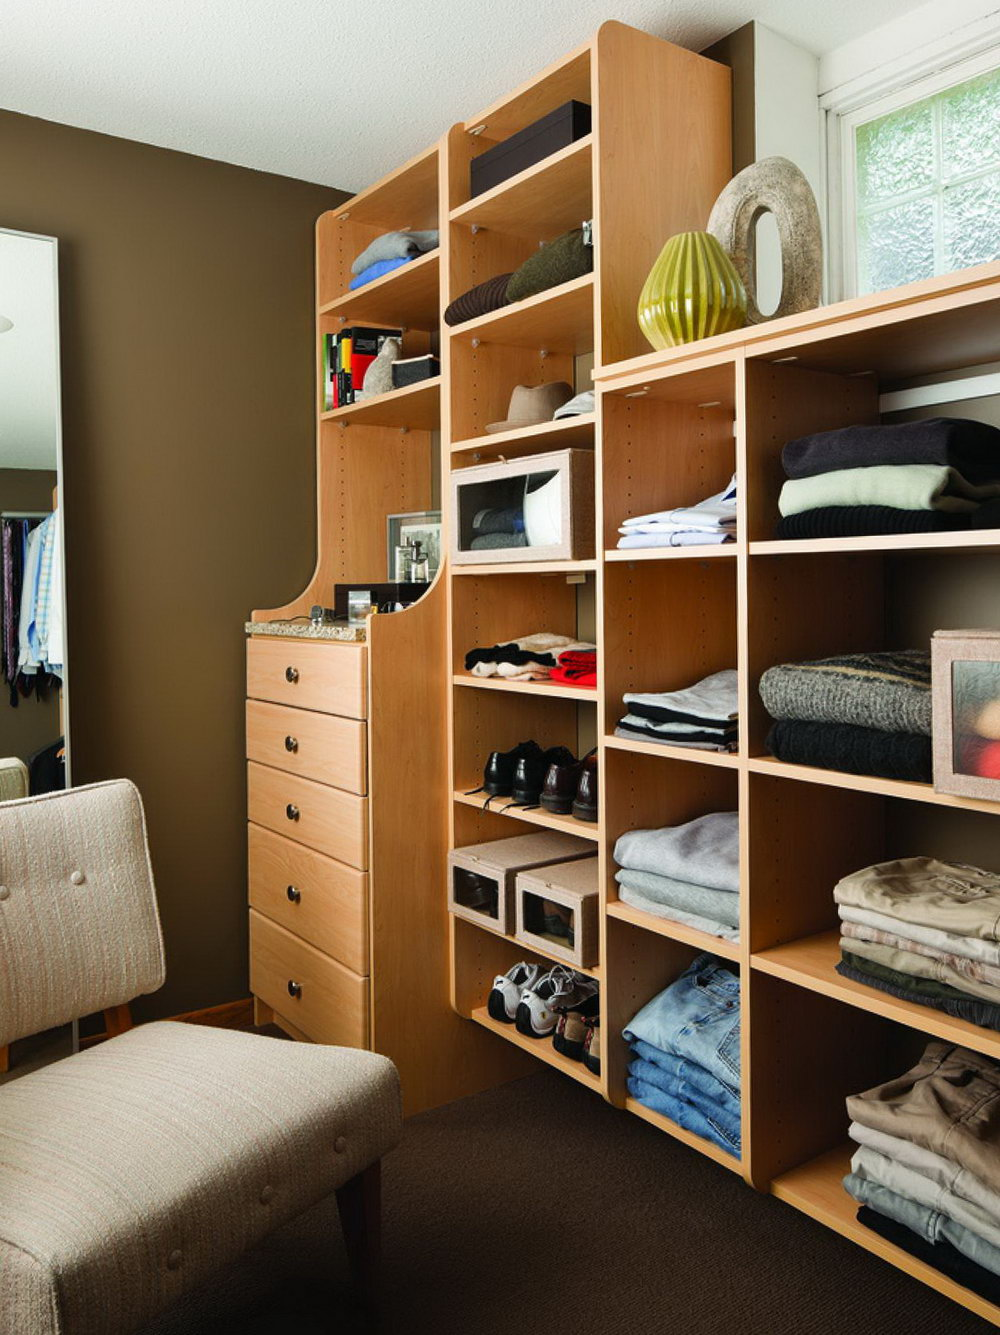 Basement Storage Closet Ideas